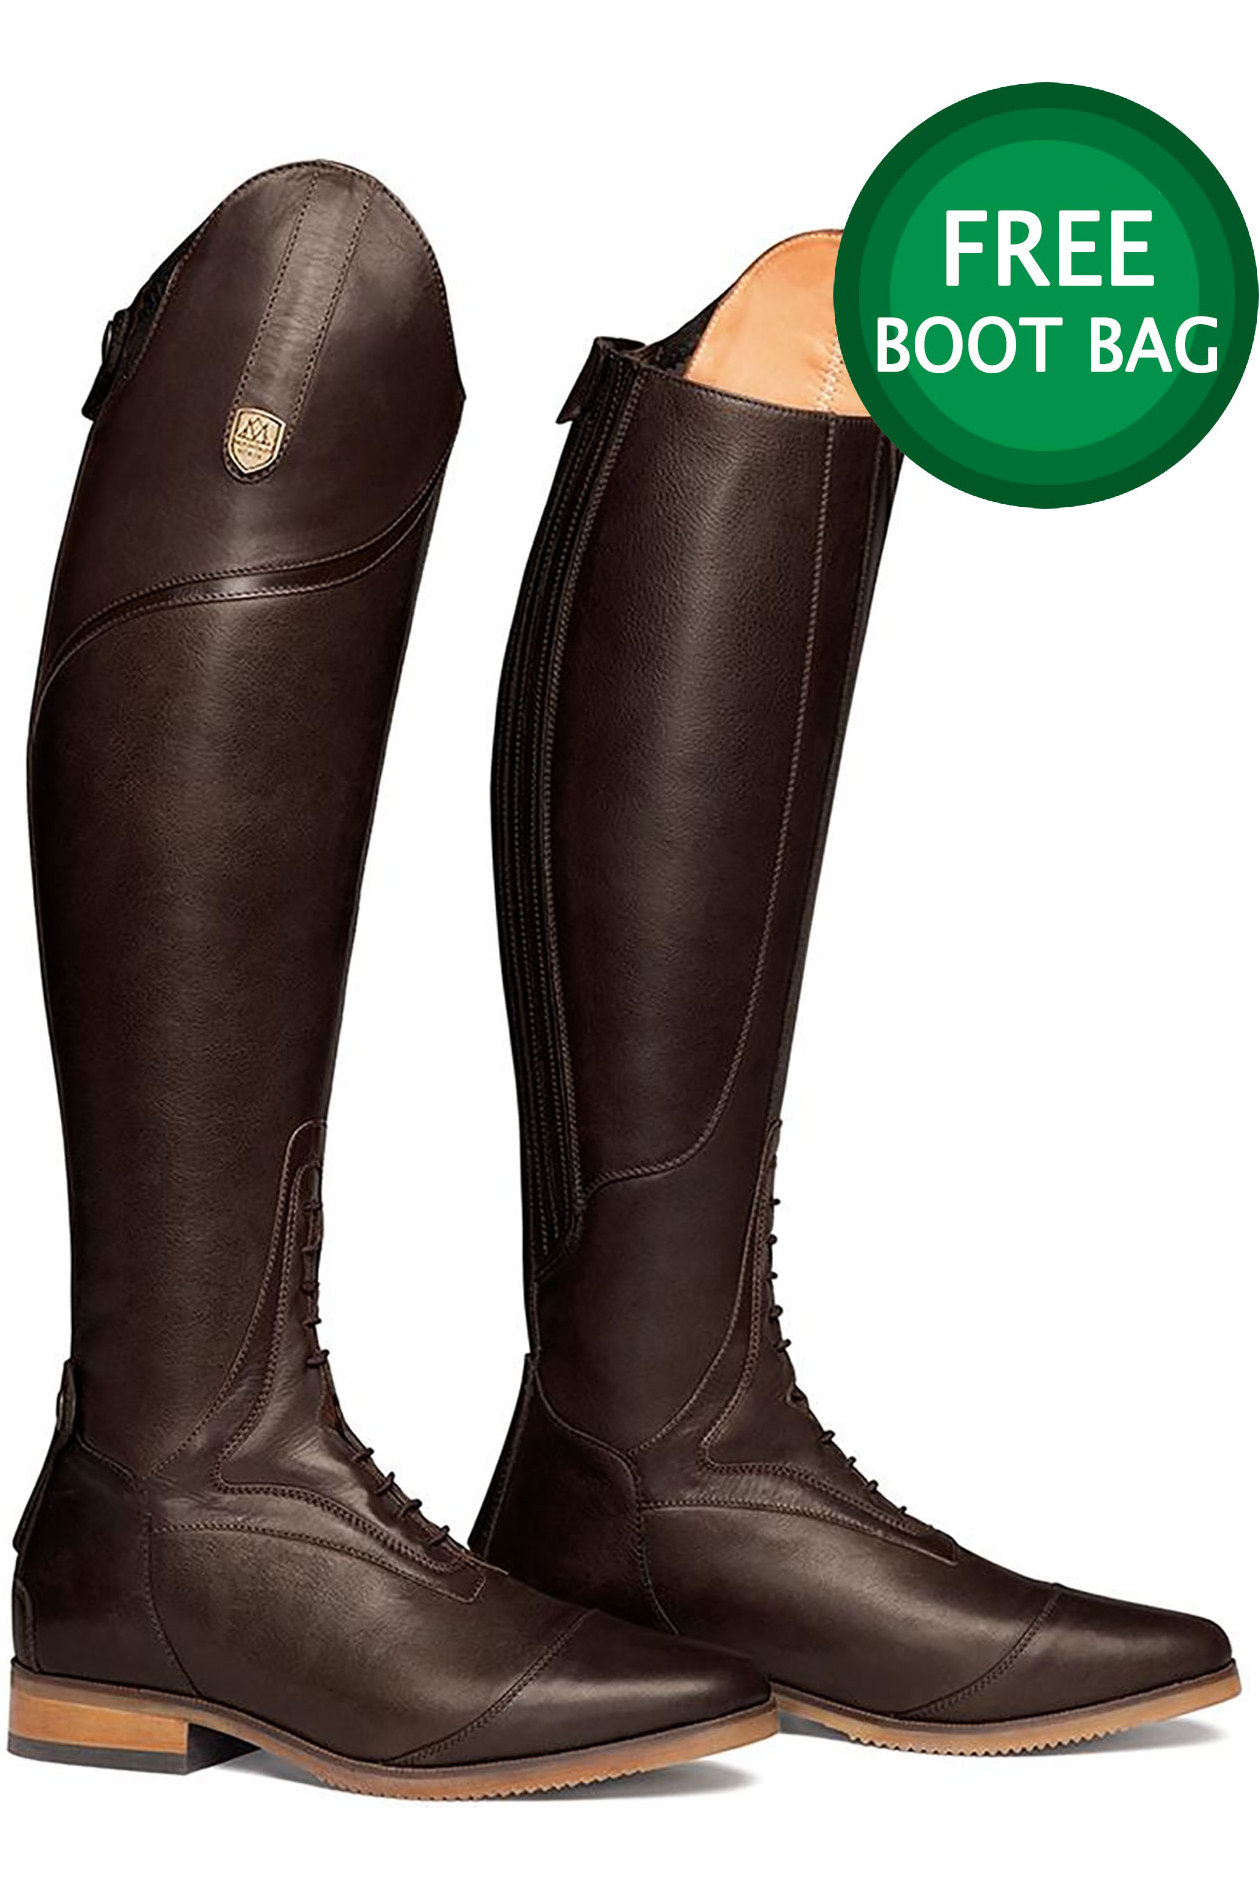 5bf5af8b9a4 Mountain Horse Womens Sovereign High Rider Boots Dark Brown